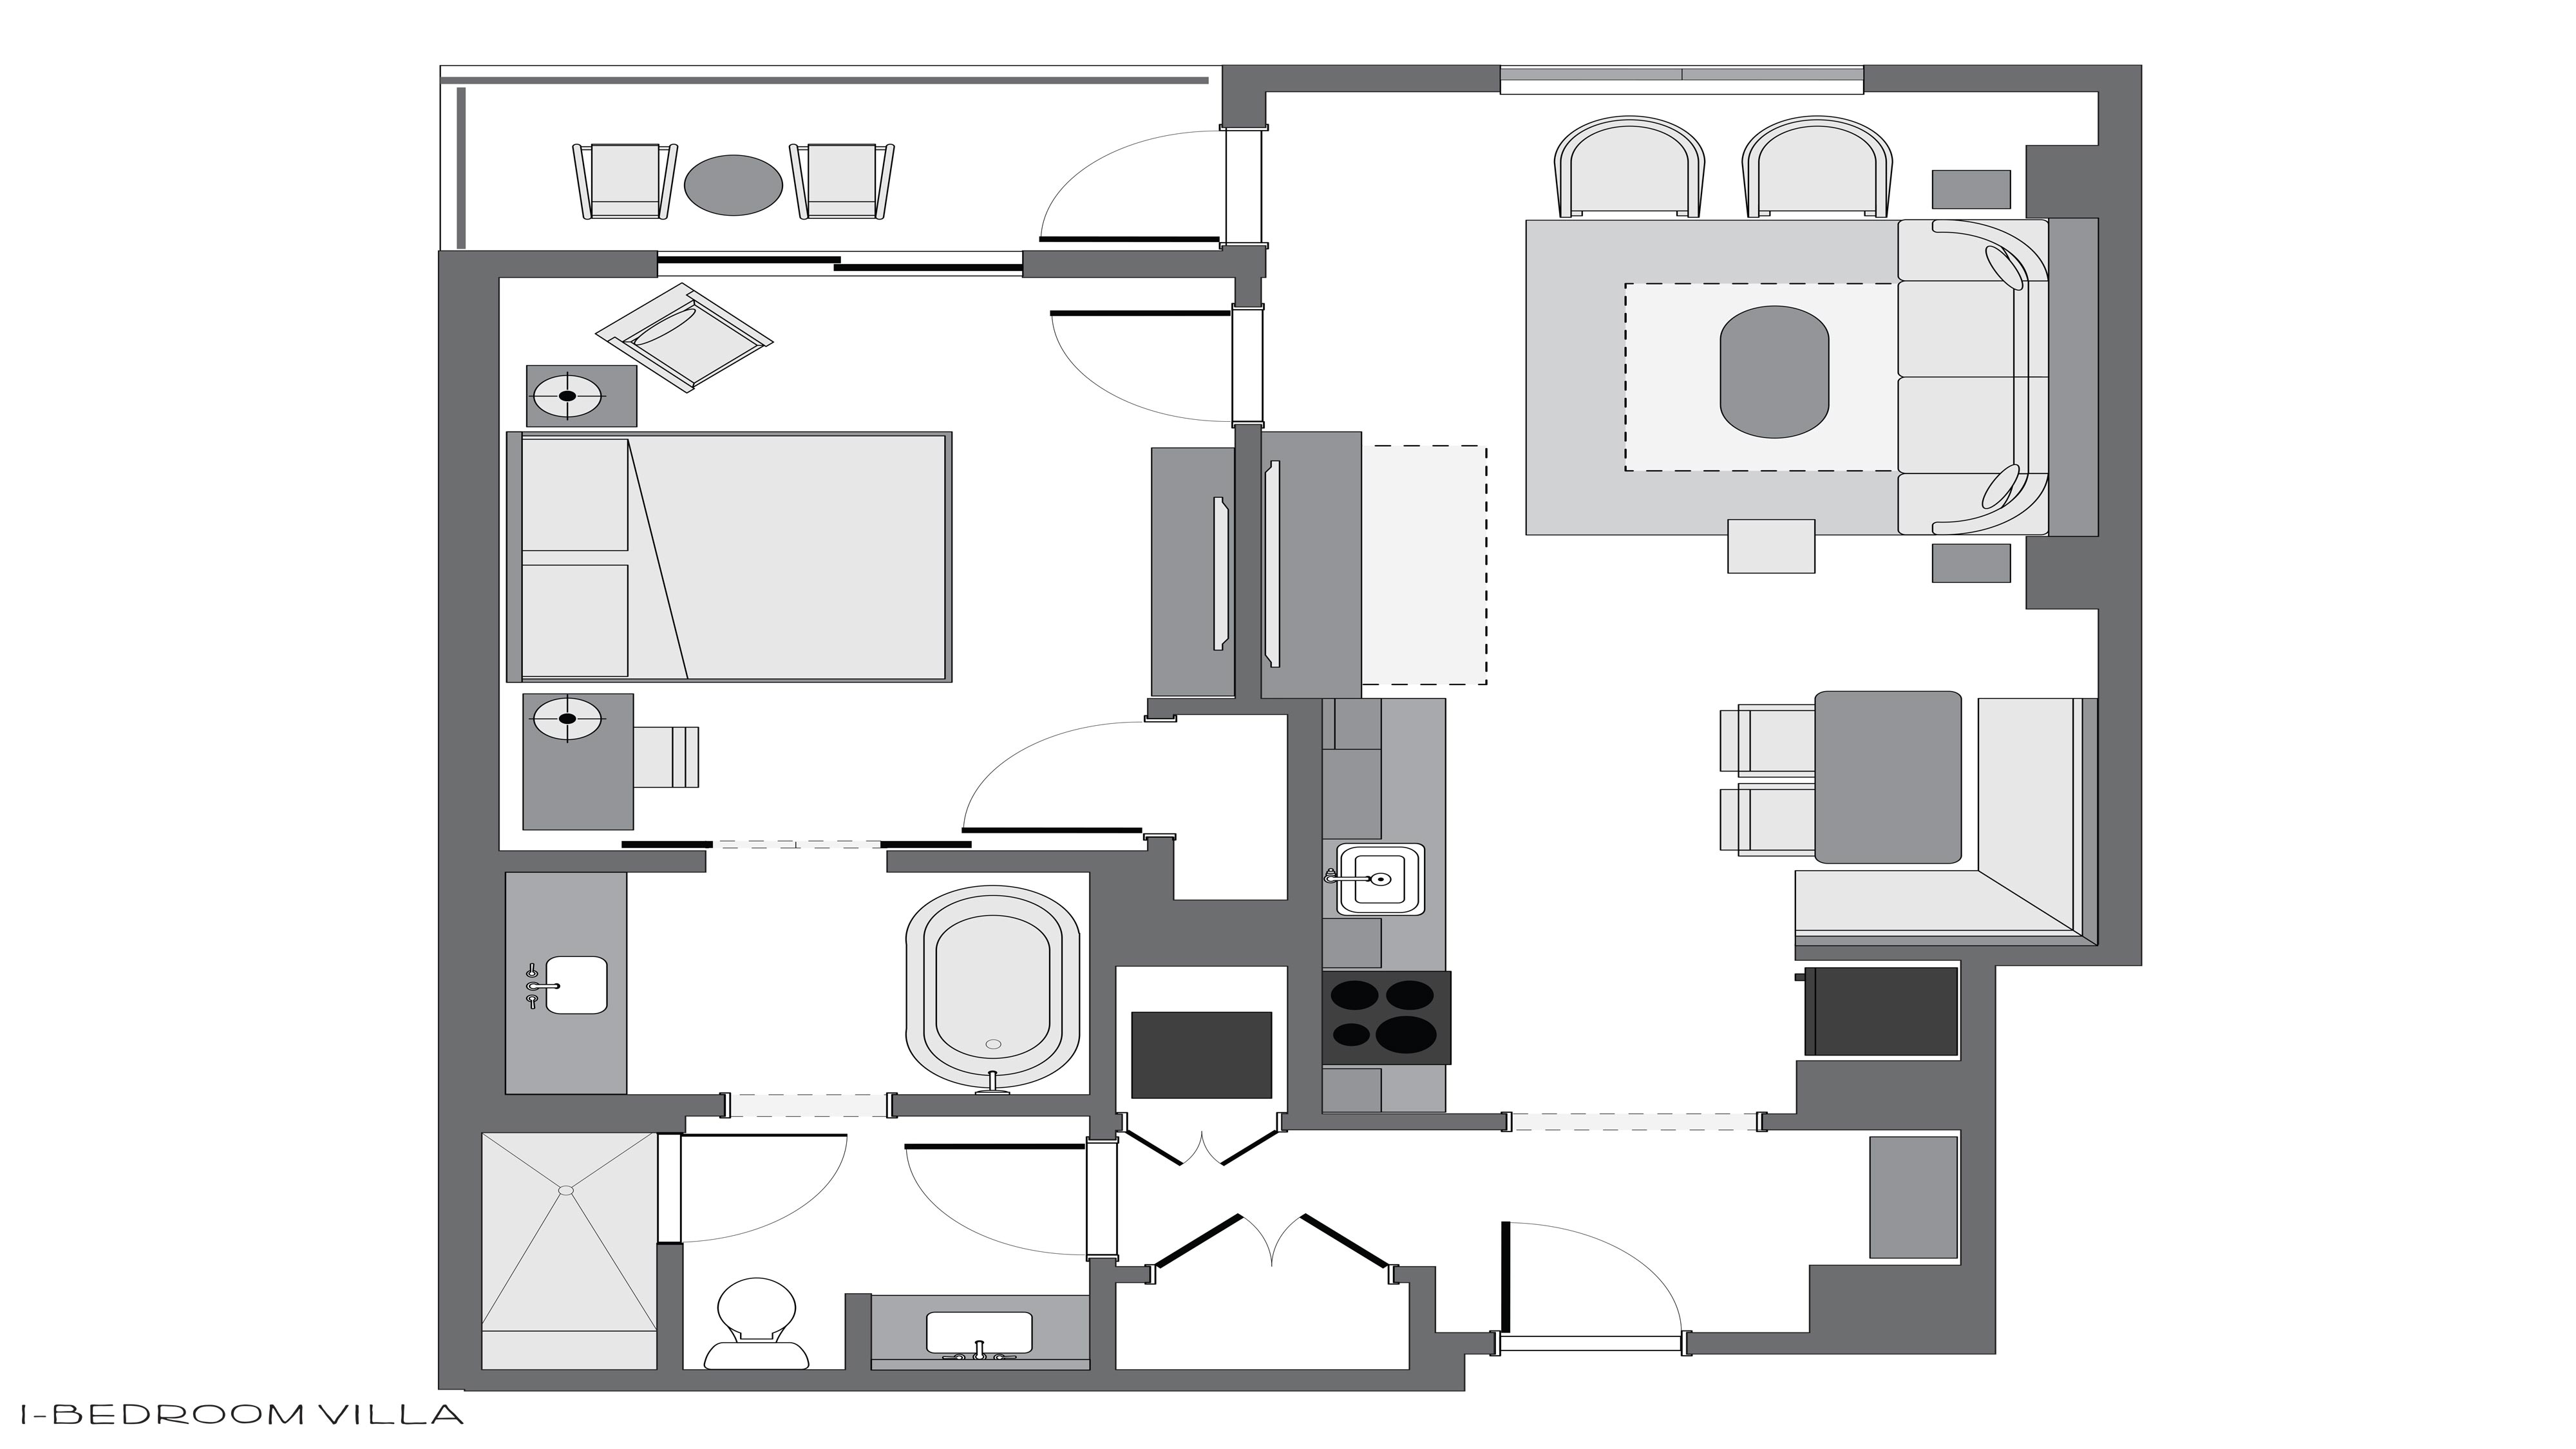 Riviera 1-Bedroom Villa Room Layout